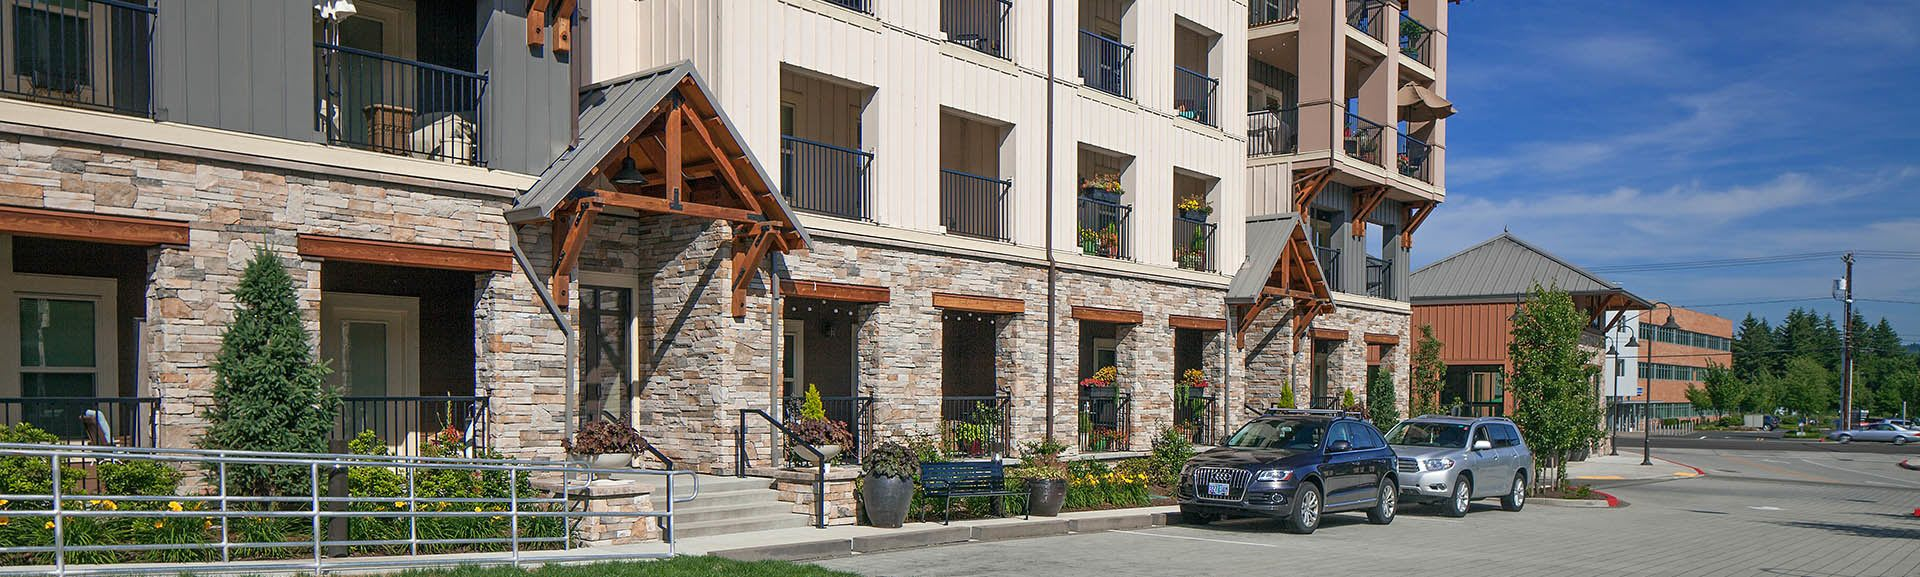 Learn about our neighborhood at Eddyline at Bridgeport in Portland, OR on our website